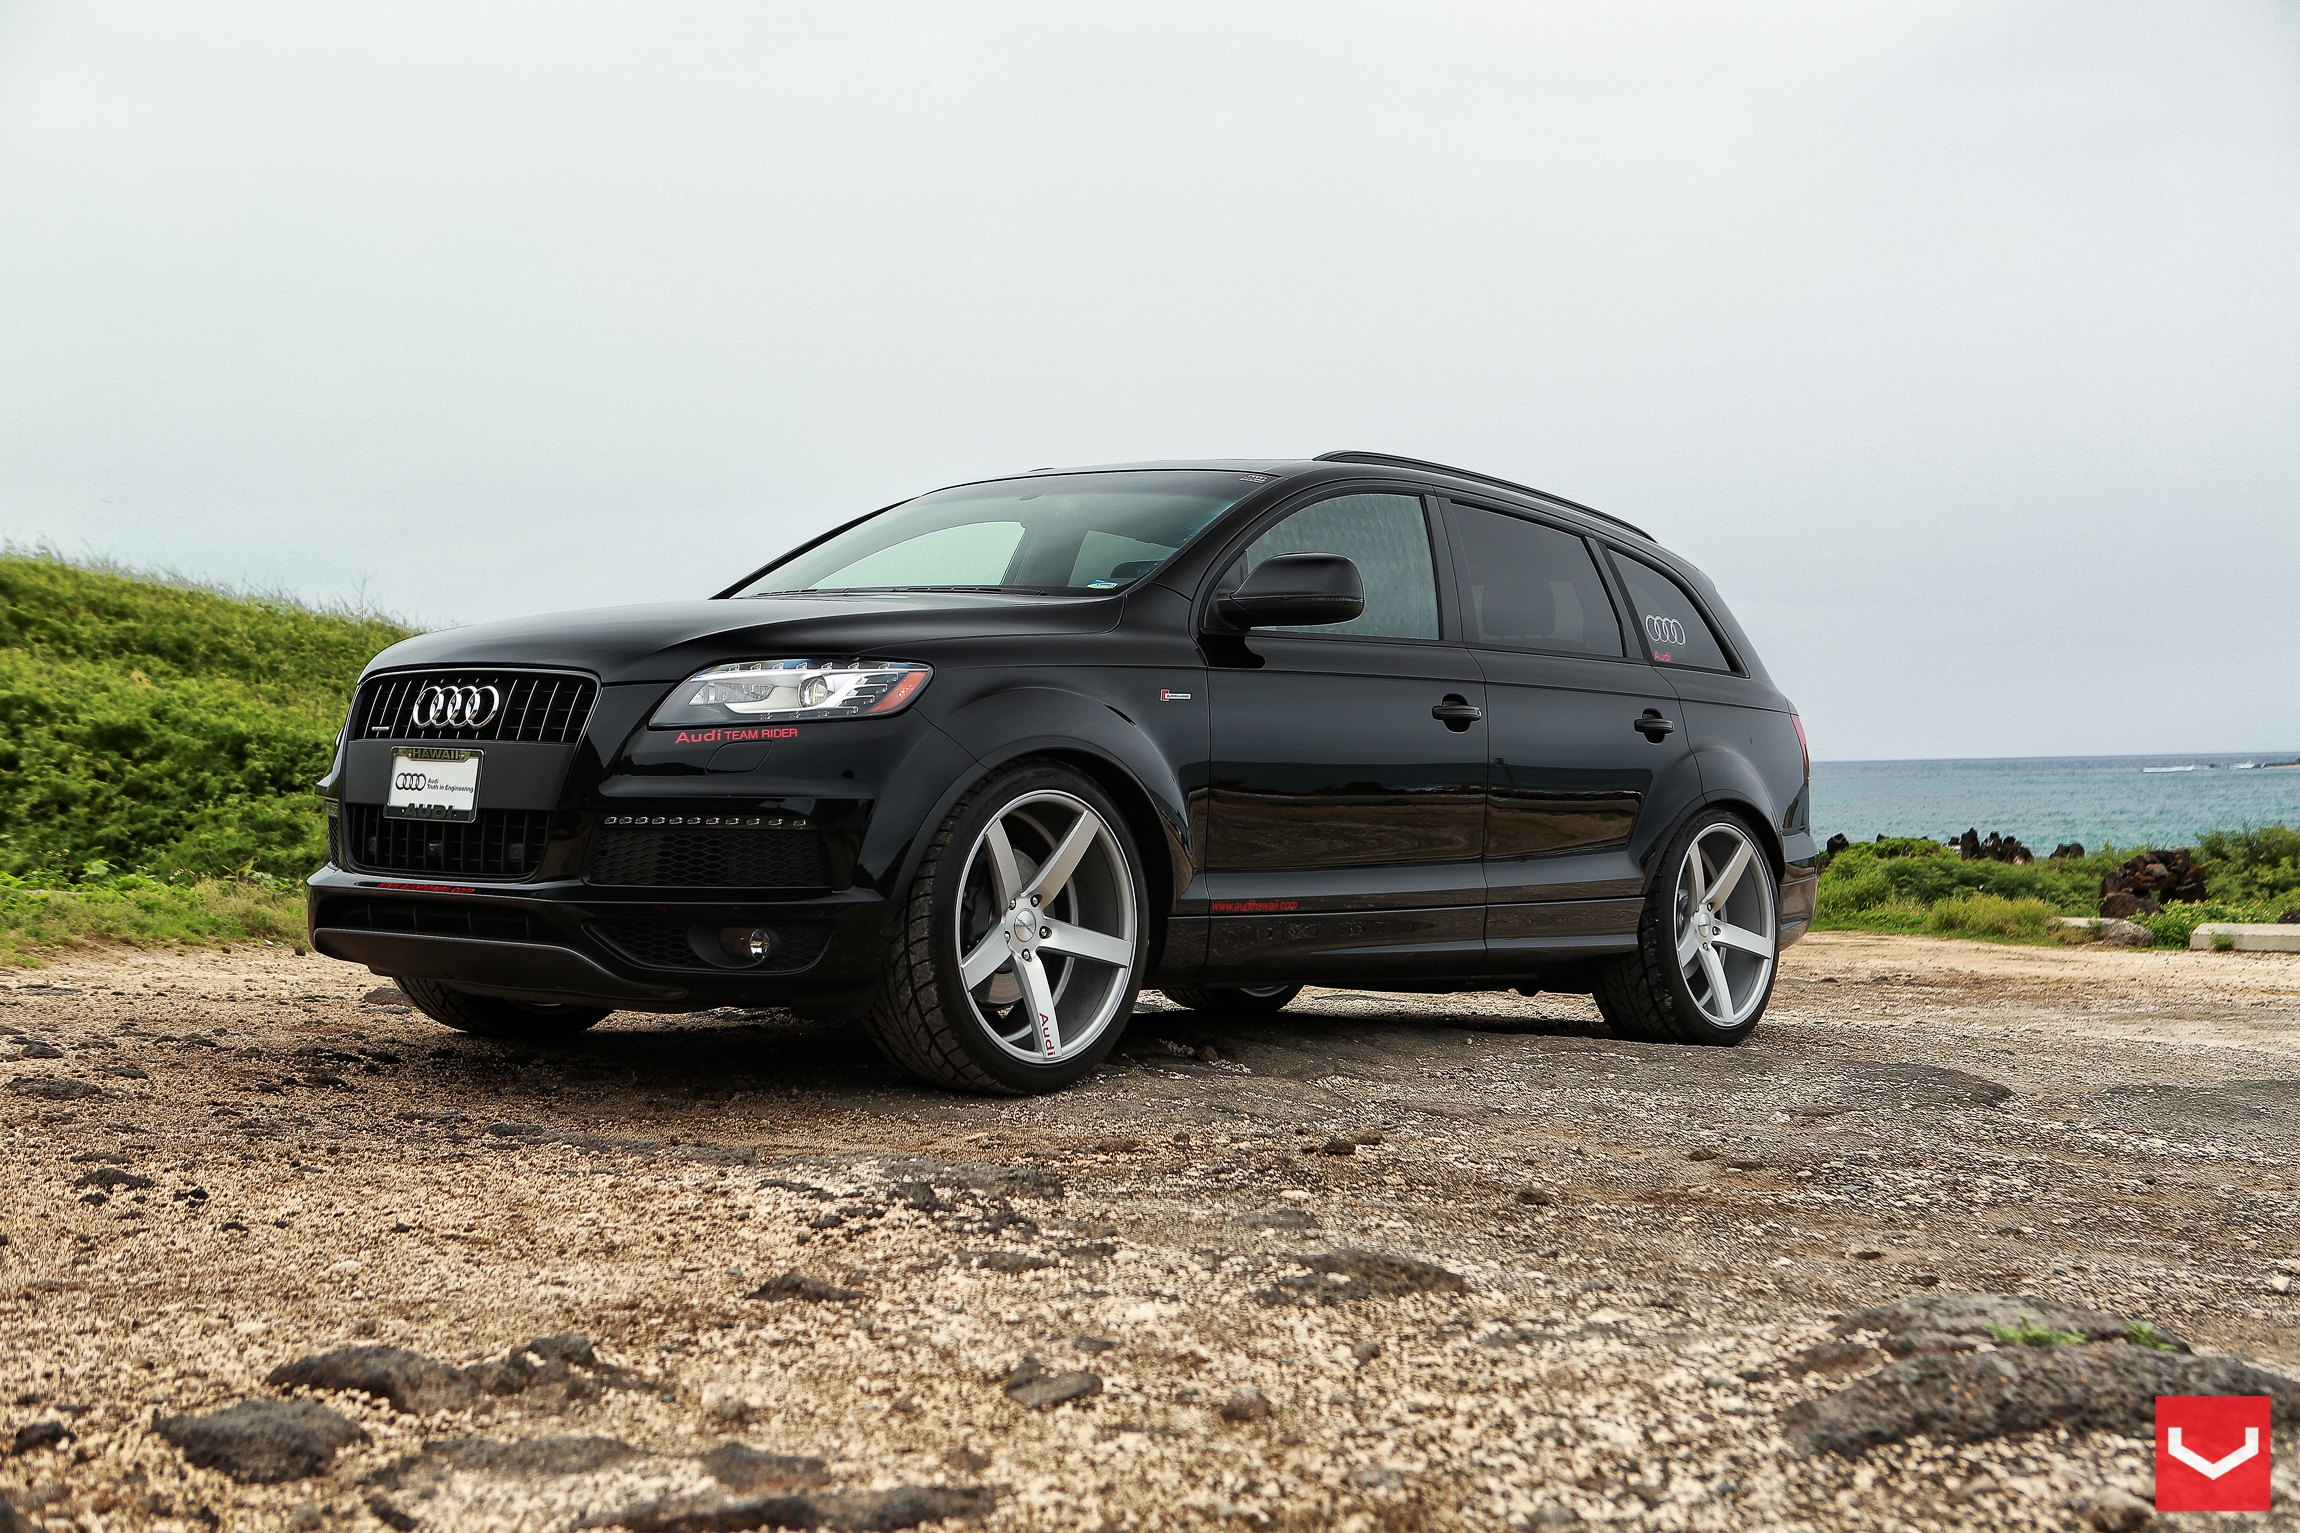 A Touch Of Style On Audi Q7 With Custom Accessories Carid Com Gallery